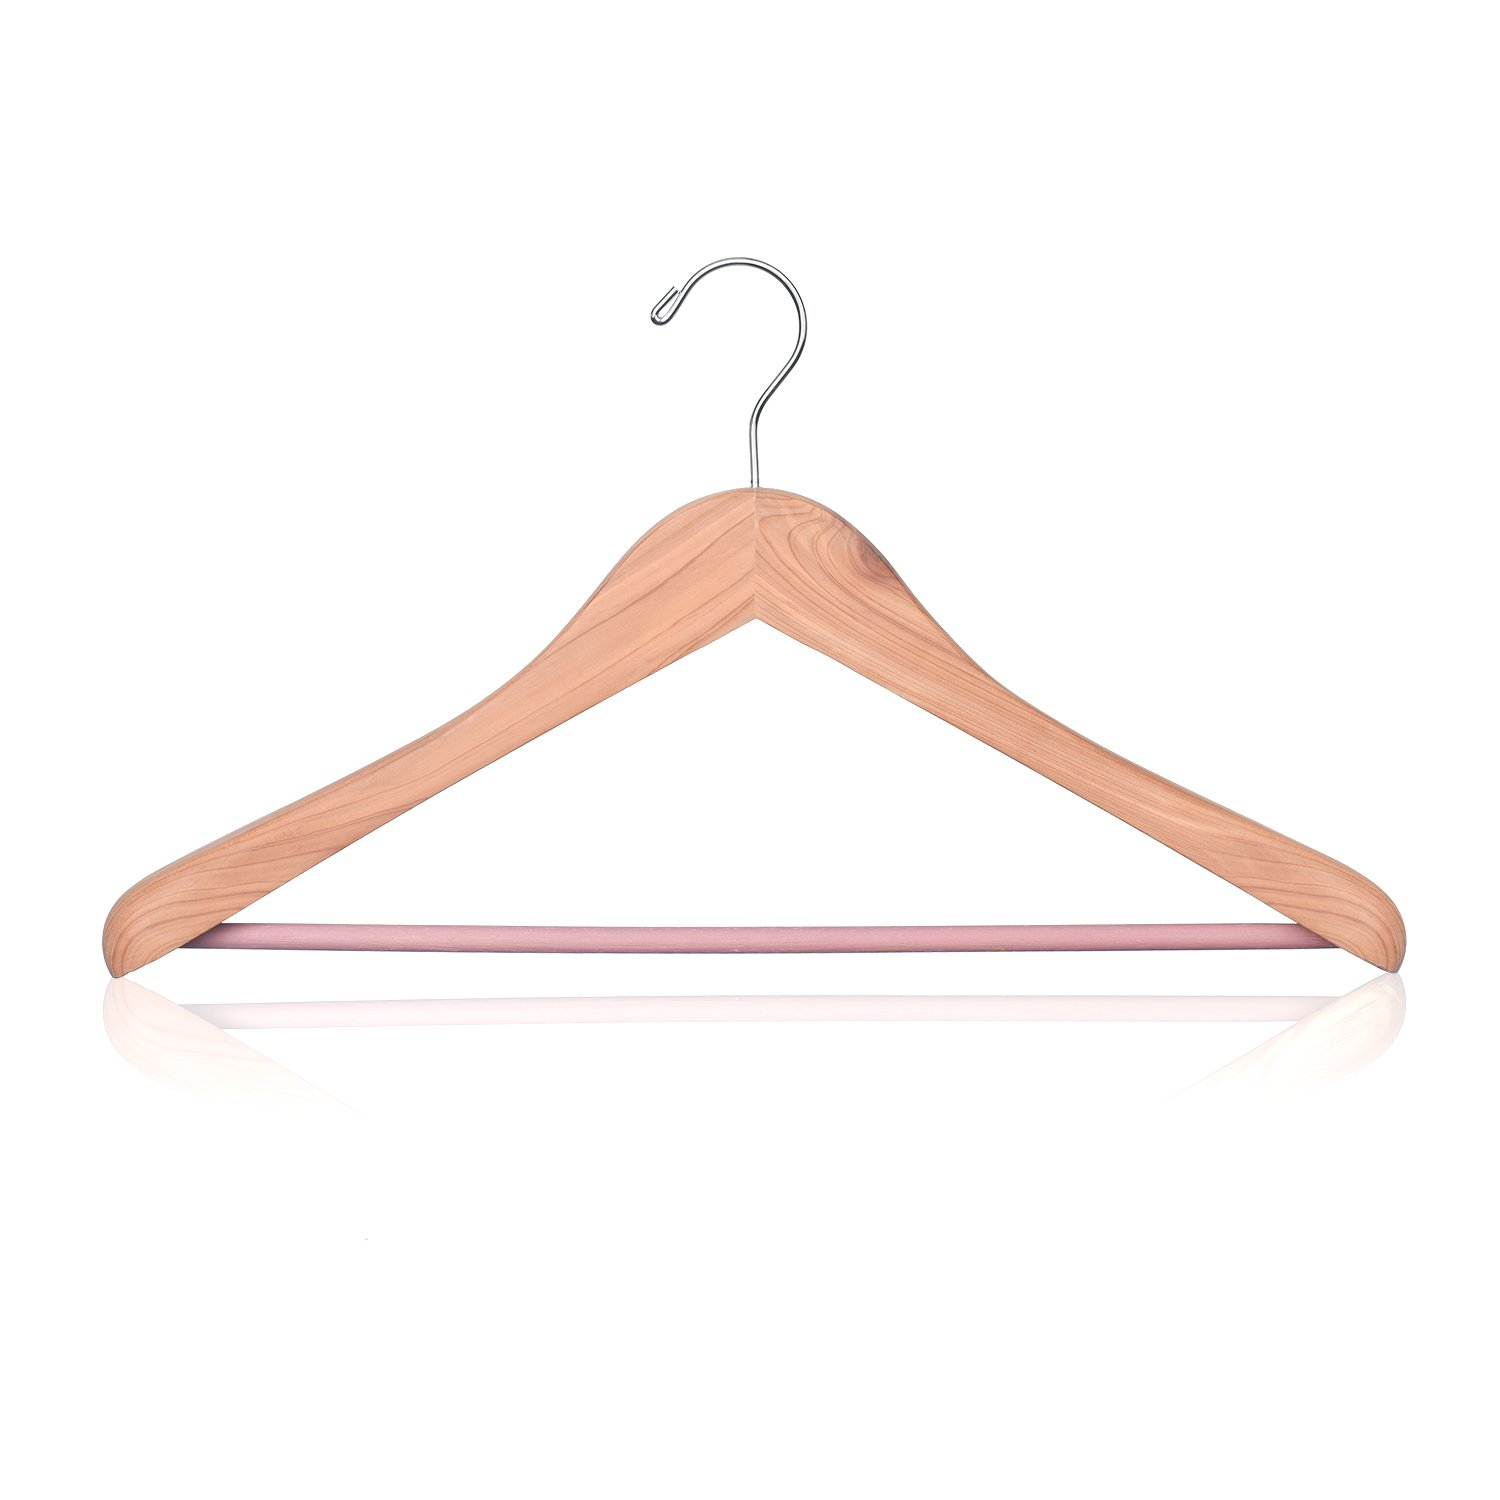 House Day Cedar Wooden Hangers Natural Fragrance Wide Shoulder Wooden Clothes Coat Hangers Natural Finish Precisely Cut Notches for Suit Jeans 1-Pack 2310711NA10